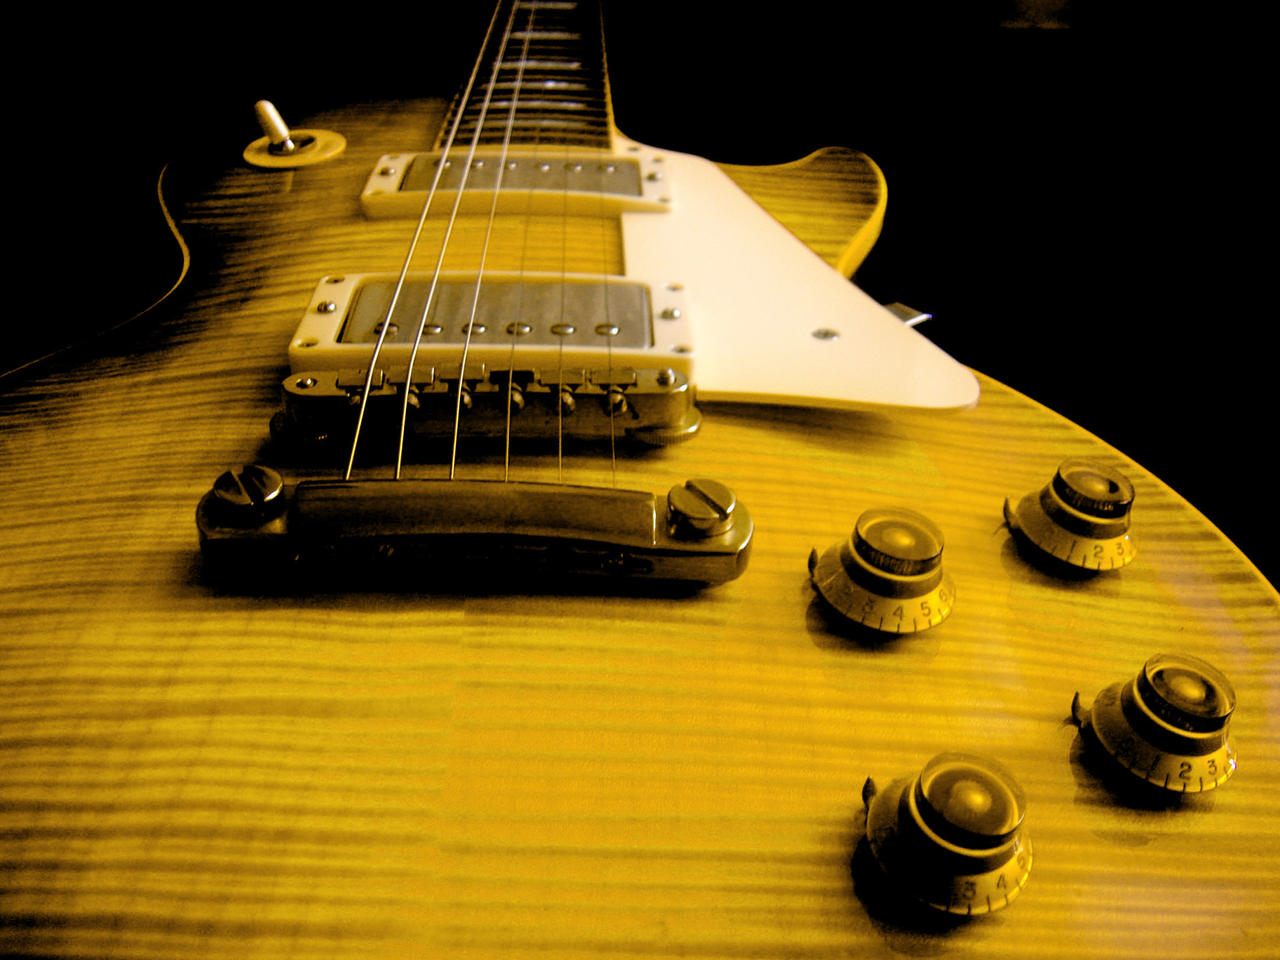 https://img00.deviantart.net/0116/i/2010/259/b/0/gibson_les_paul_yellow_i_by_vianto-d2yvs0z.jpg